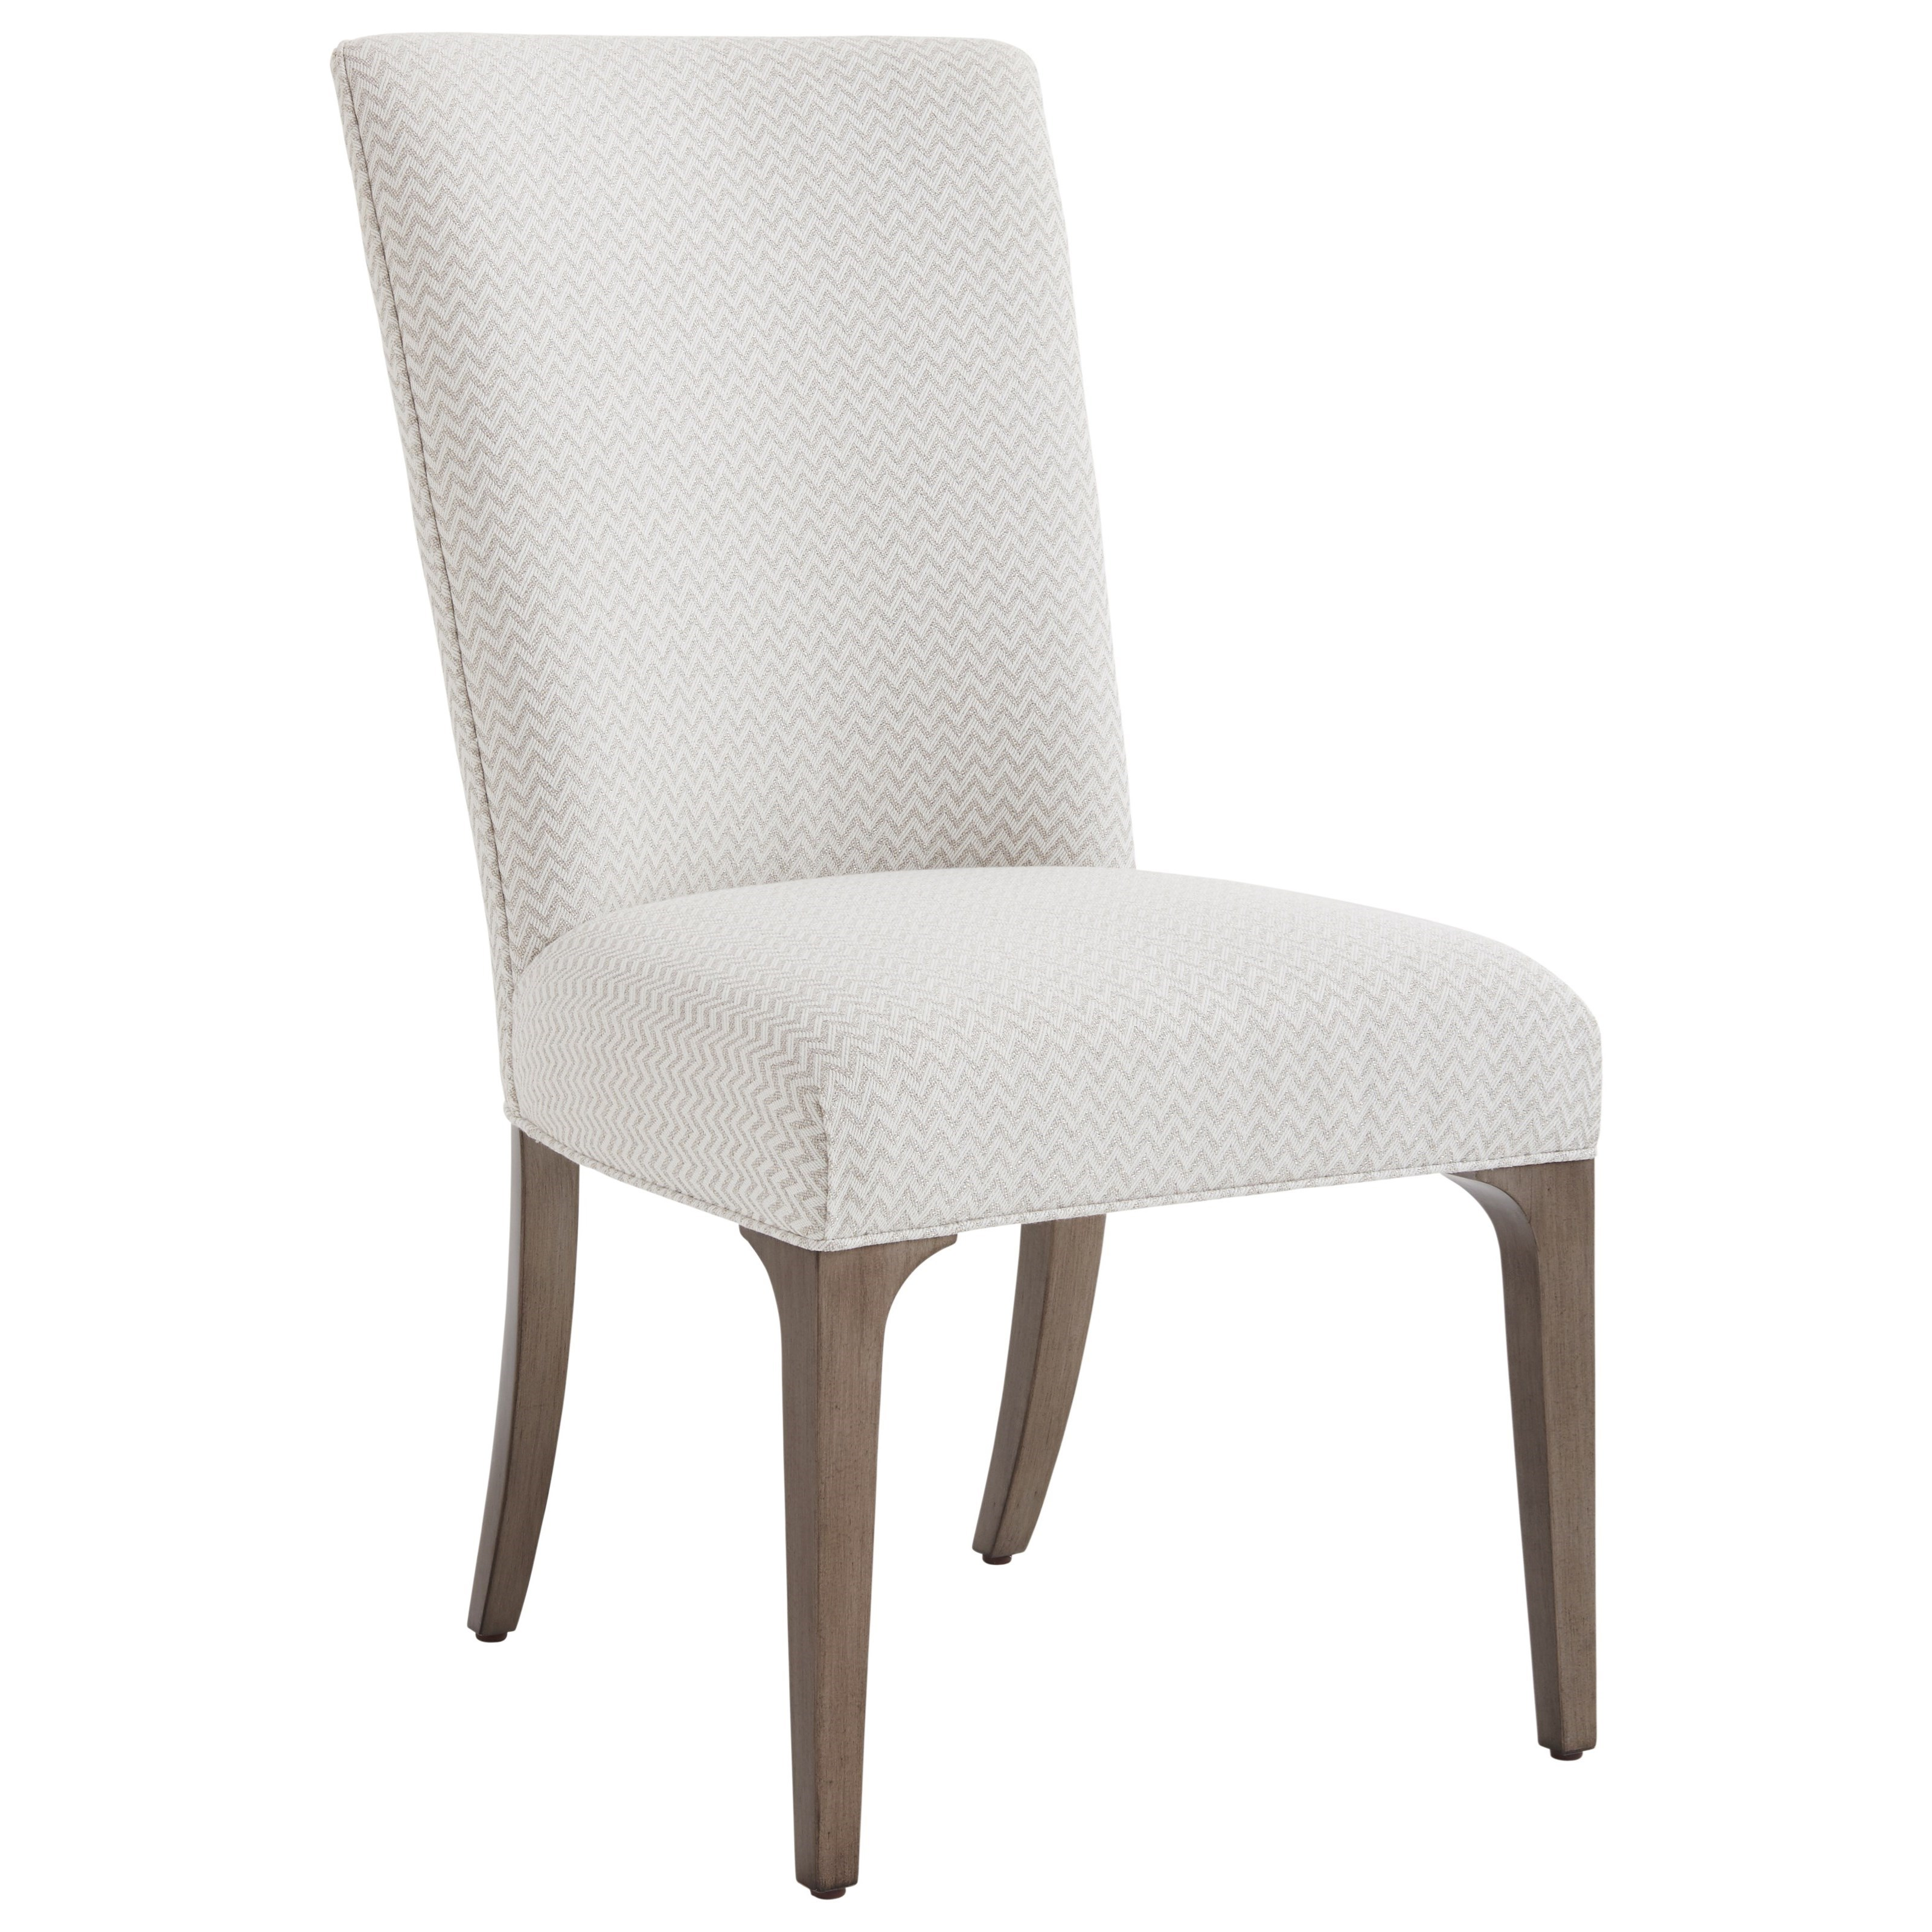 Ariana Bellamy Upholstered Side Chair by Lexington at Johnny Janosik